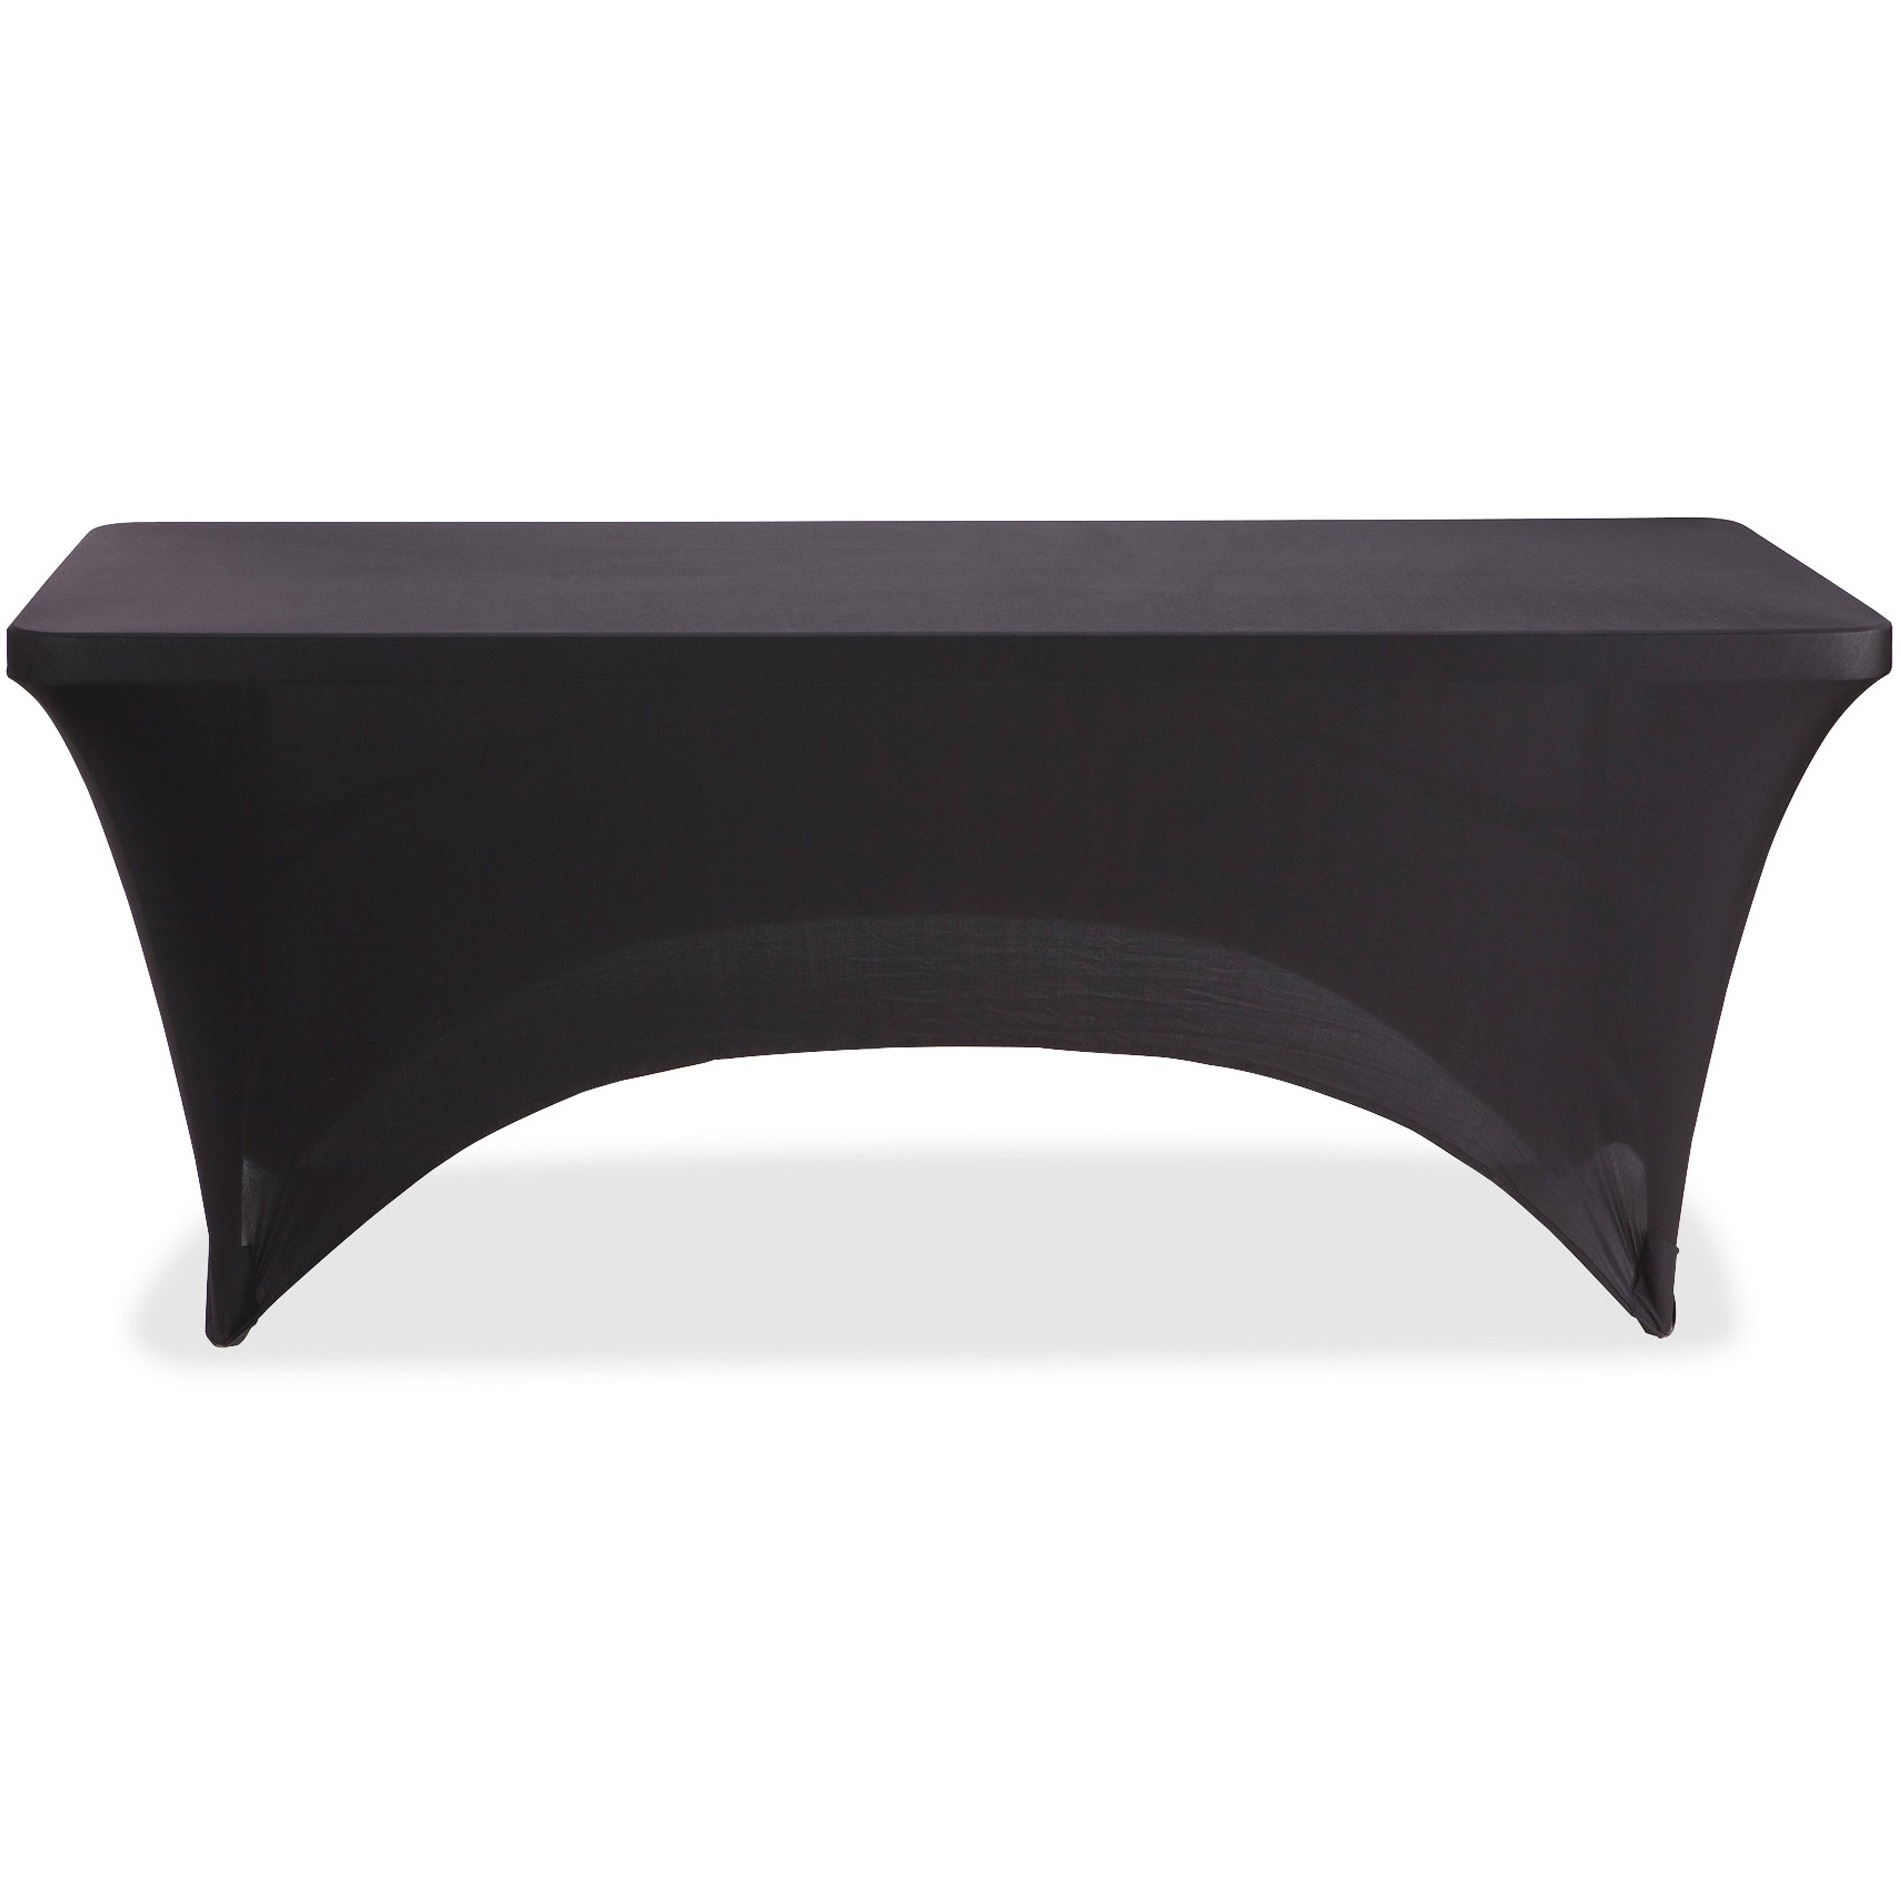 Iceberg, ICE16521, Stretch Fabric Table Cover, 1 Each, Black